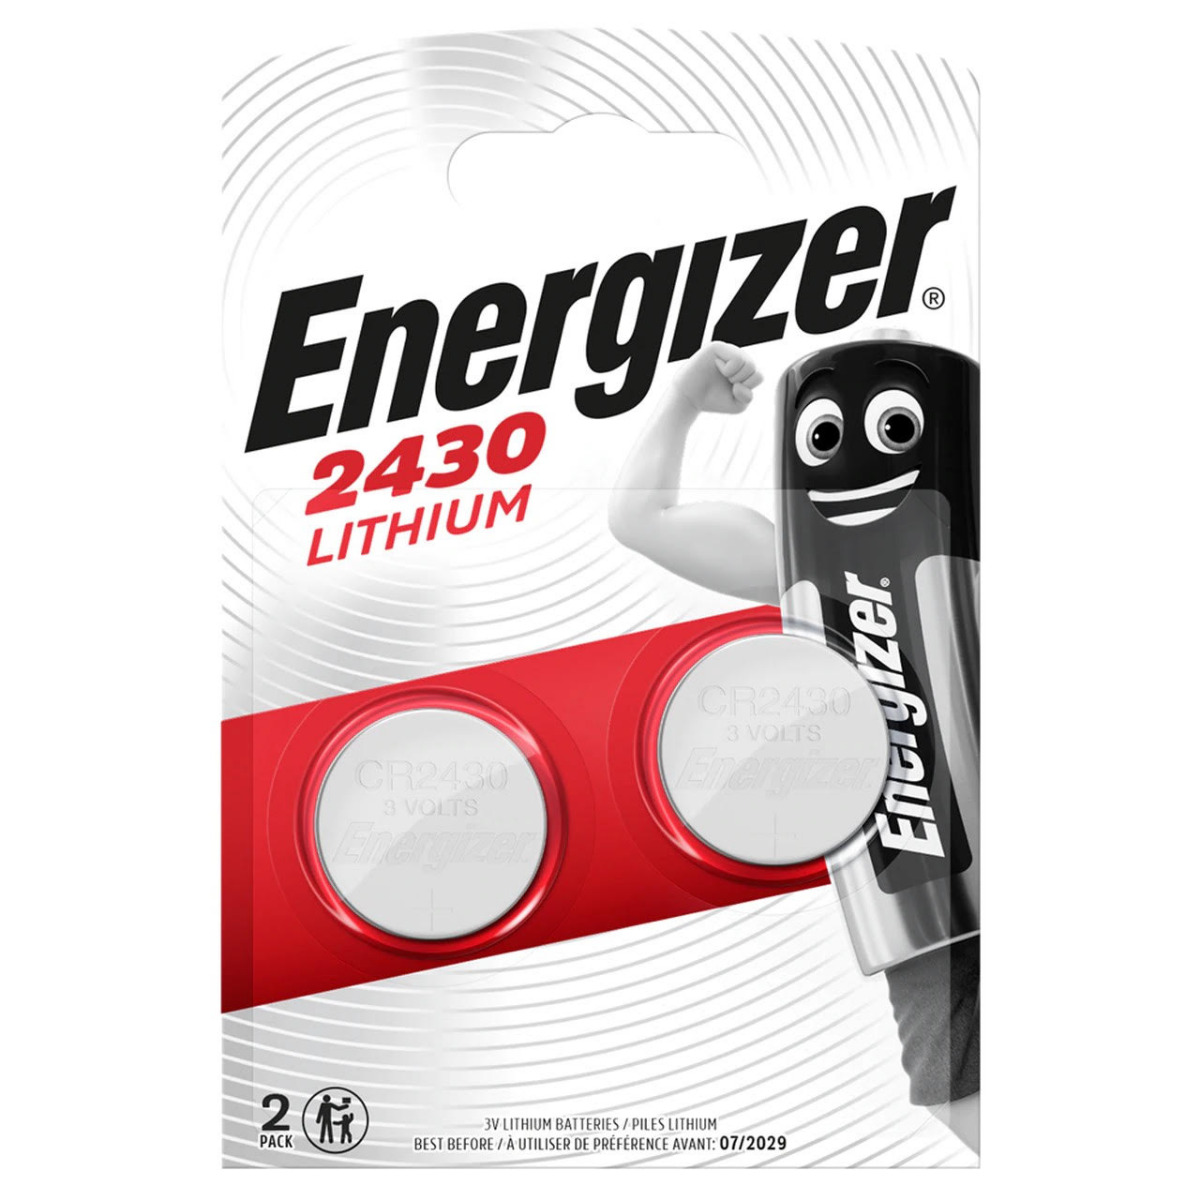 Energizer CR2430 Coin Cell 3V Lithium Batteries | 2 Pack